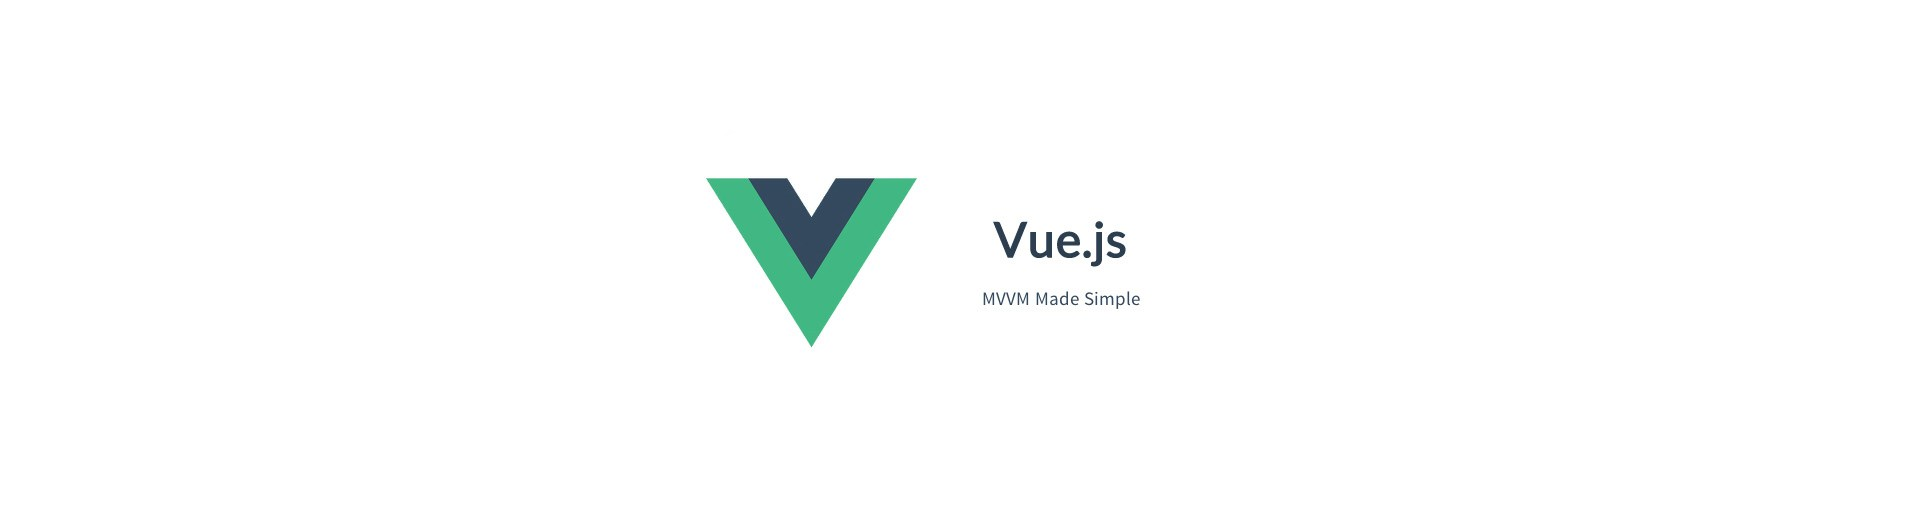 Up & Running with Vue.js 2.0 by creating a simple blog application